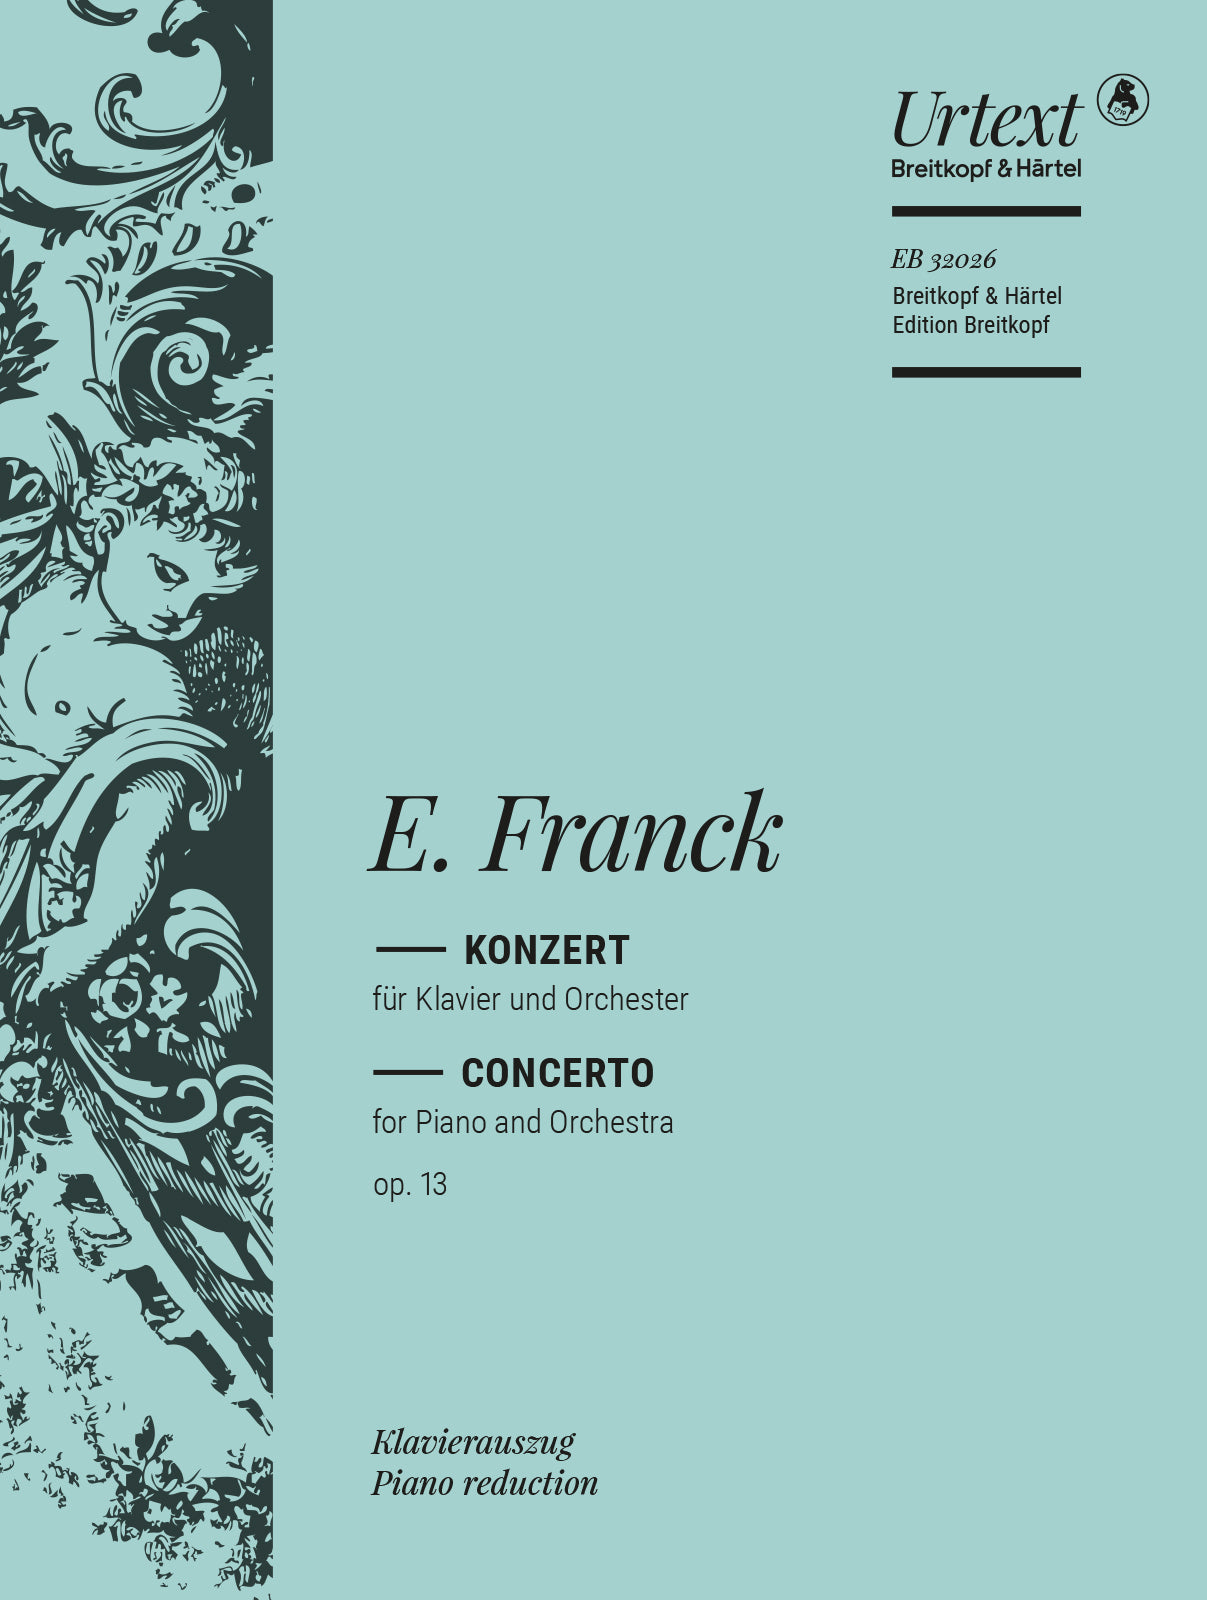 E. Franck: Piano Concerto in D Minor, Op. 13